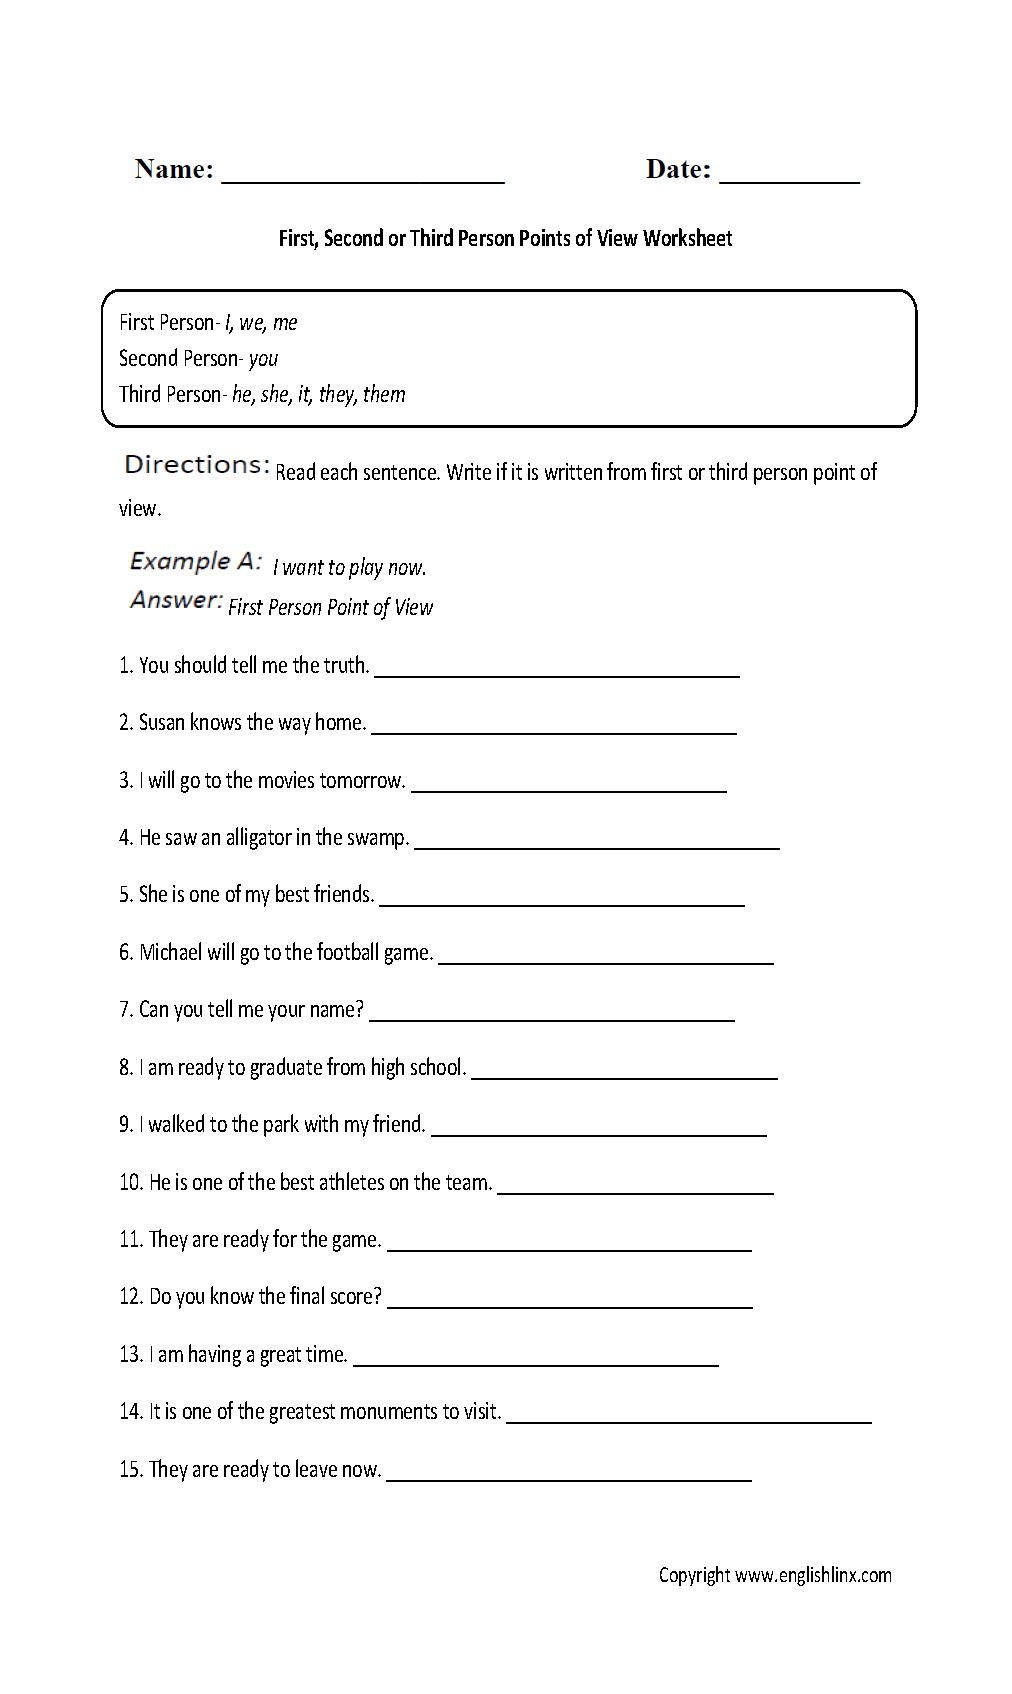 Proatmealus  Gorgeous Englishlinxcom  Point Of View Worksheets With Marvelous Point Of View Worksheet With Attractive Free Printable Verb Tense Worksheets Also Non Action Verbs Worksheets In Addition Math Worksheets For Th Grade Decimals And Units Of Measurement Worksheets As Well As Fact Triangles Worksheet Additionally Free Math Worksheets Middle School From Englishlinxcom With Proatmealus  Marvelous Englishlinxcom  Point Of View Worksheets With Attractive Point Of View Worksheet And Gorgeous Free Printable Verb Tense Worksheets Also Non Action Verbs Worksheets In Addition Math Worksheets For Th Grade Decimals From Englishlinxcom